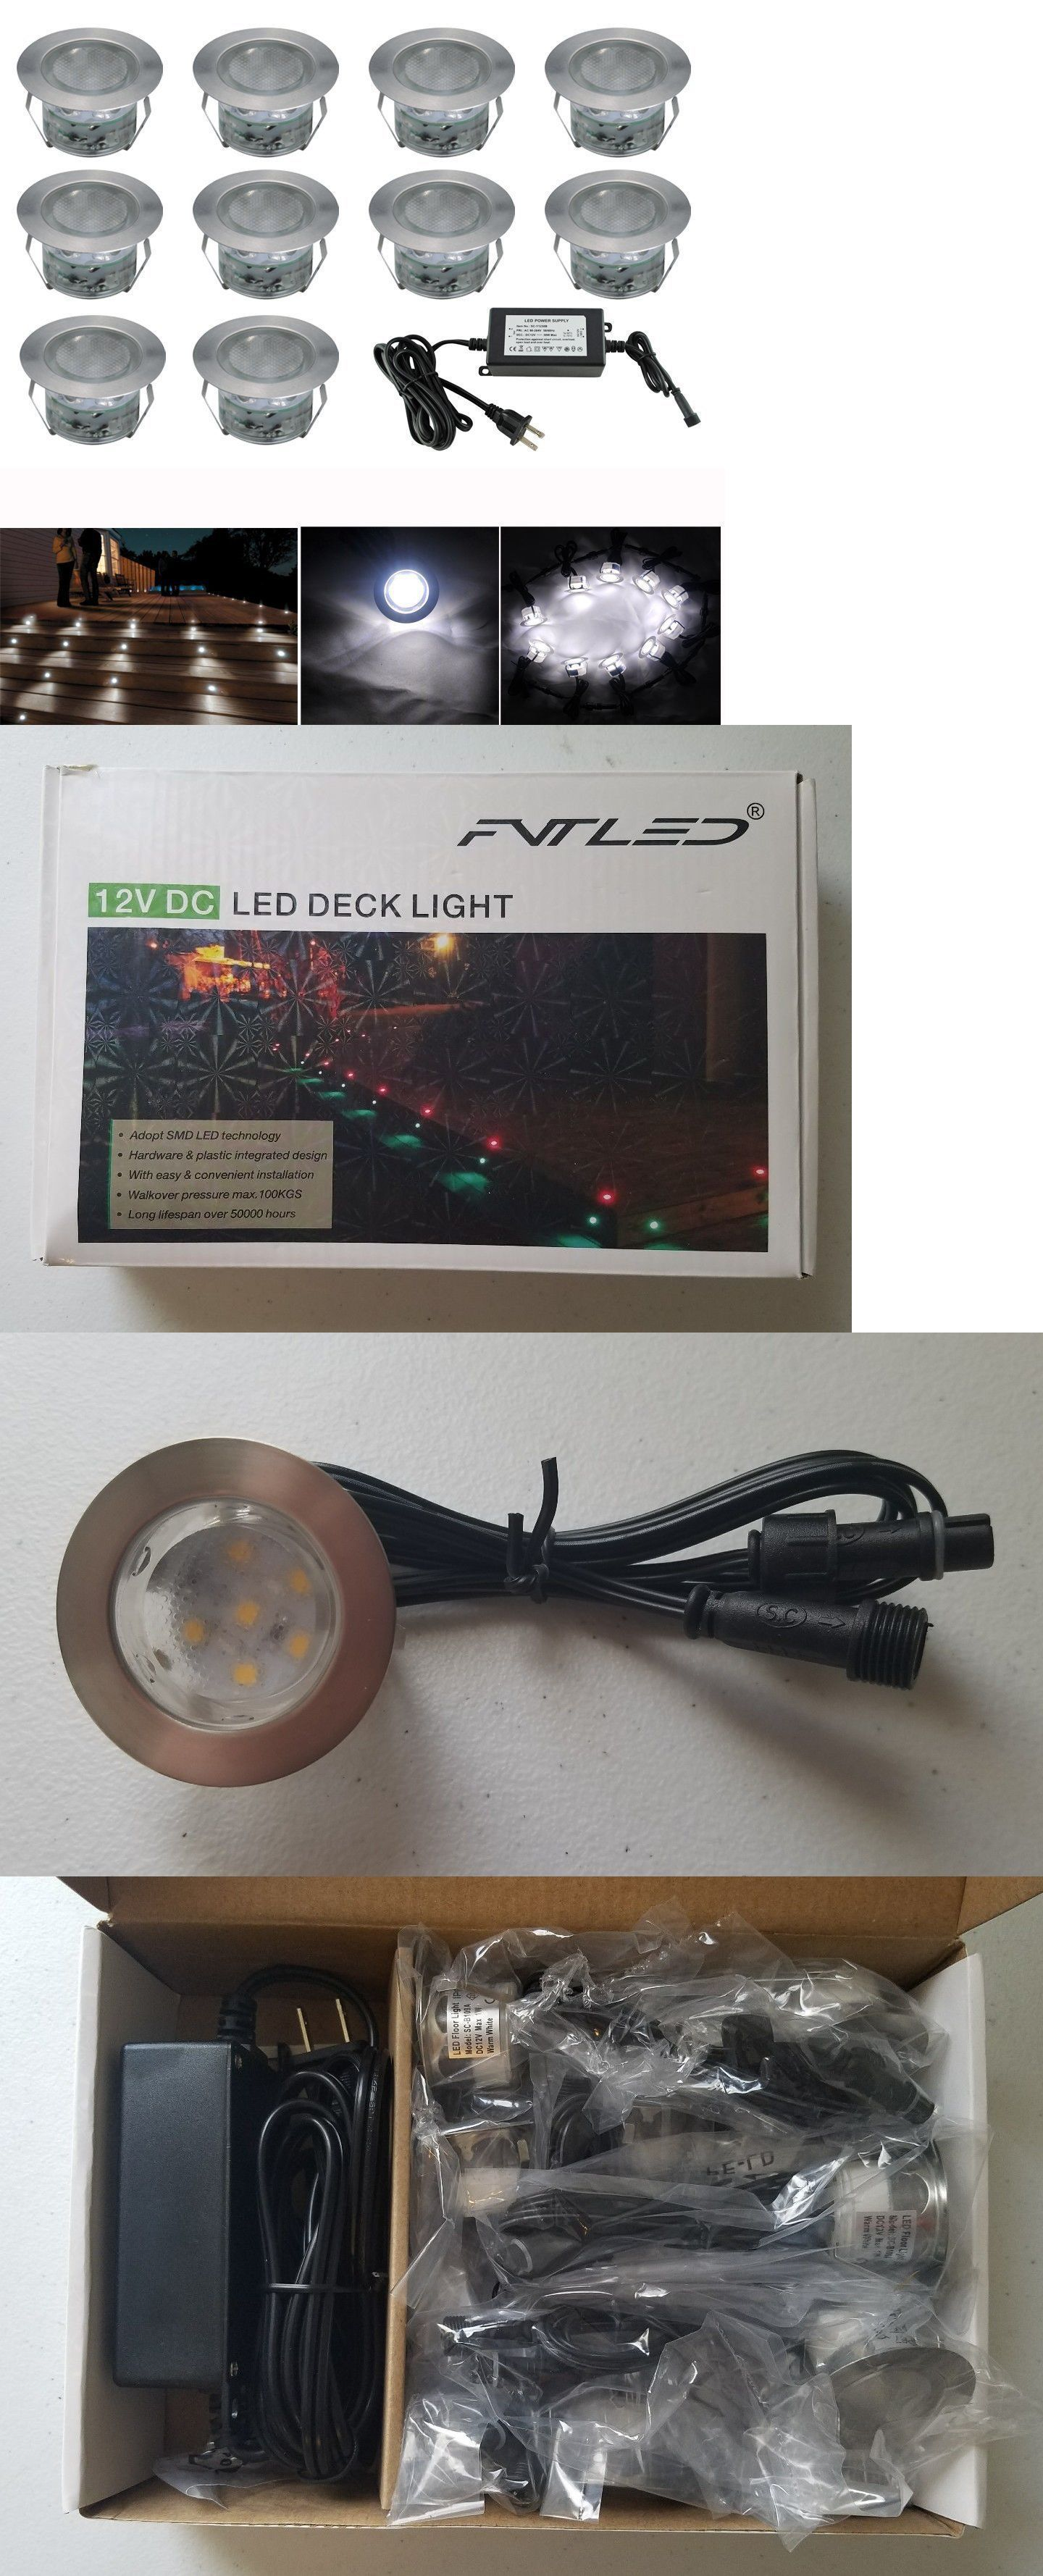 low voltage interior lighting kits%0A Other Outdoor Lighting        Fvtled Low Voltage Led Deck Lighting Kit   Pack Of